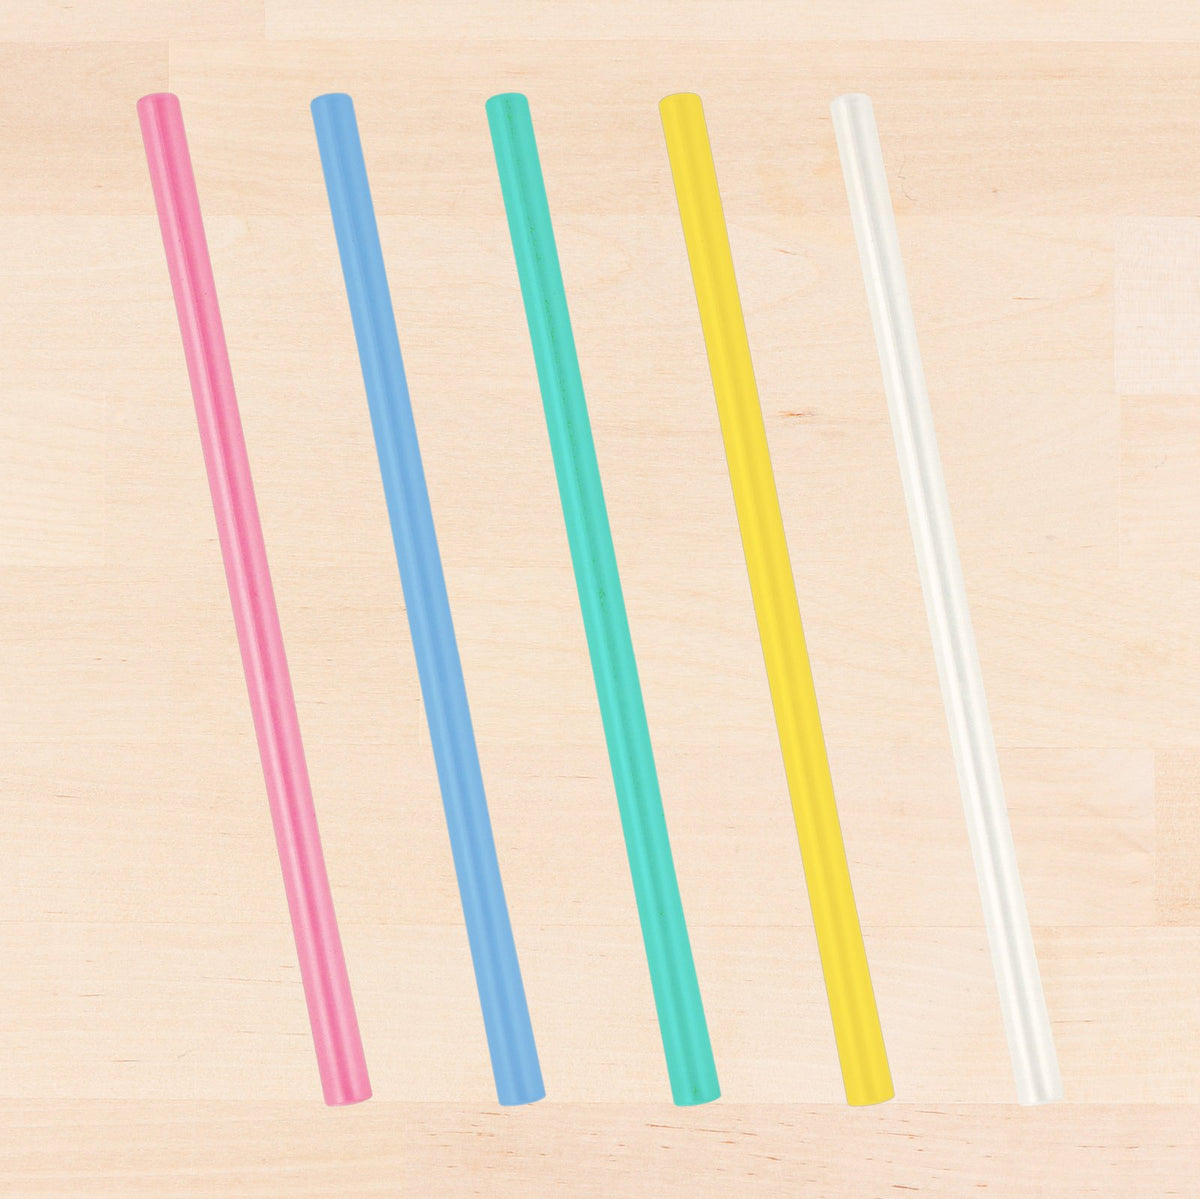 Straw Cup - Replacement Silicone Straw